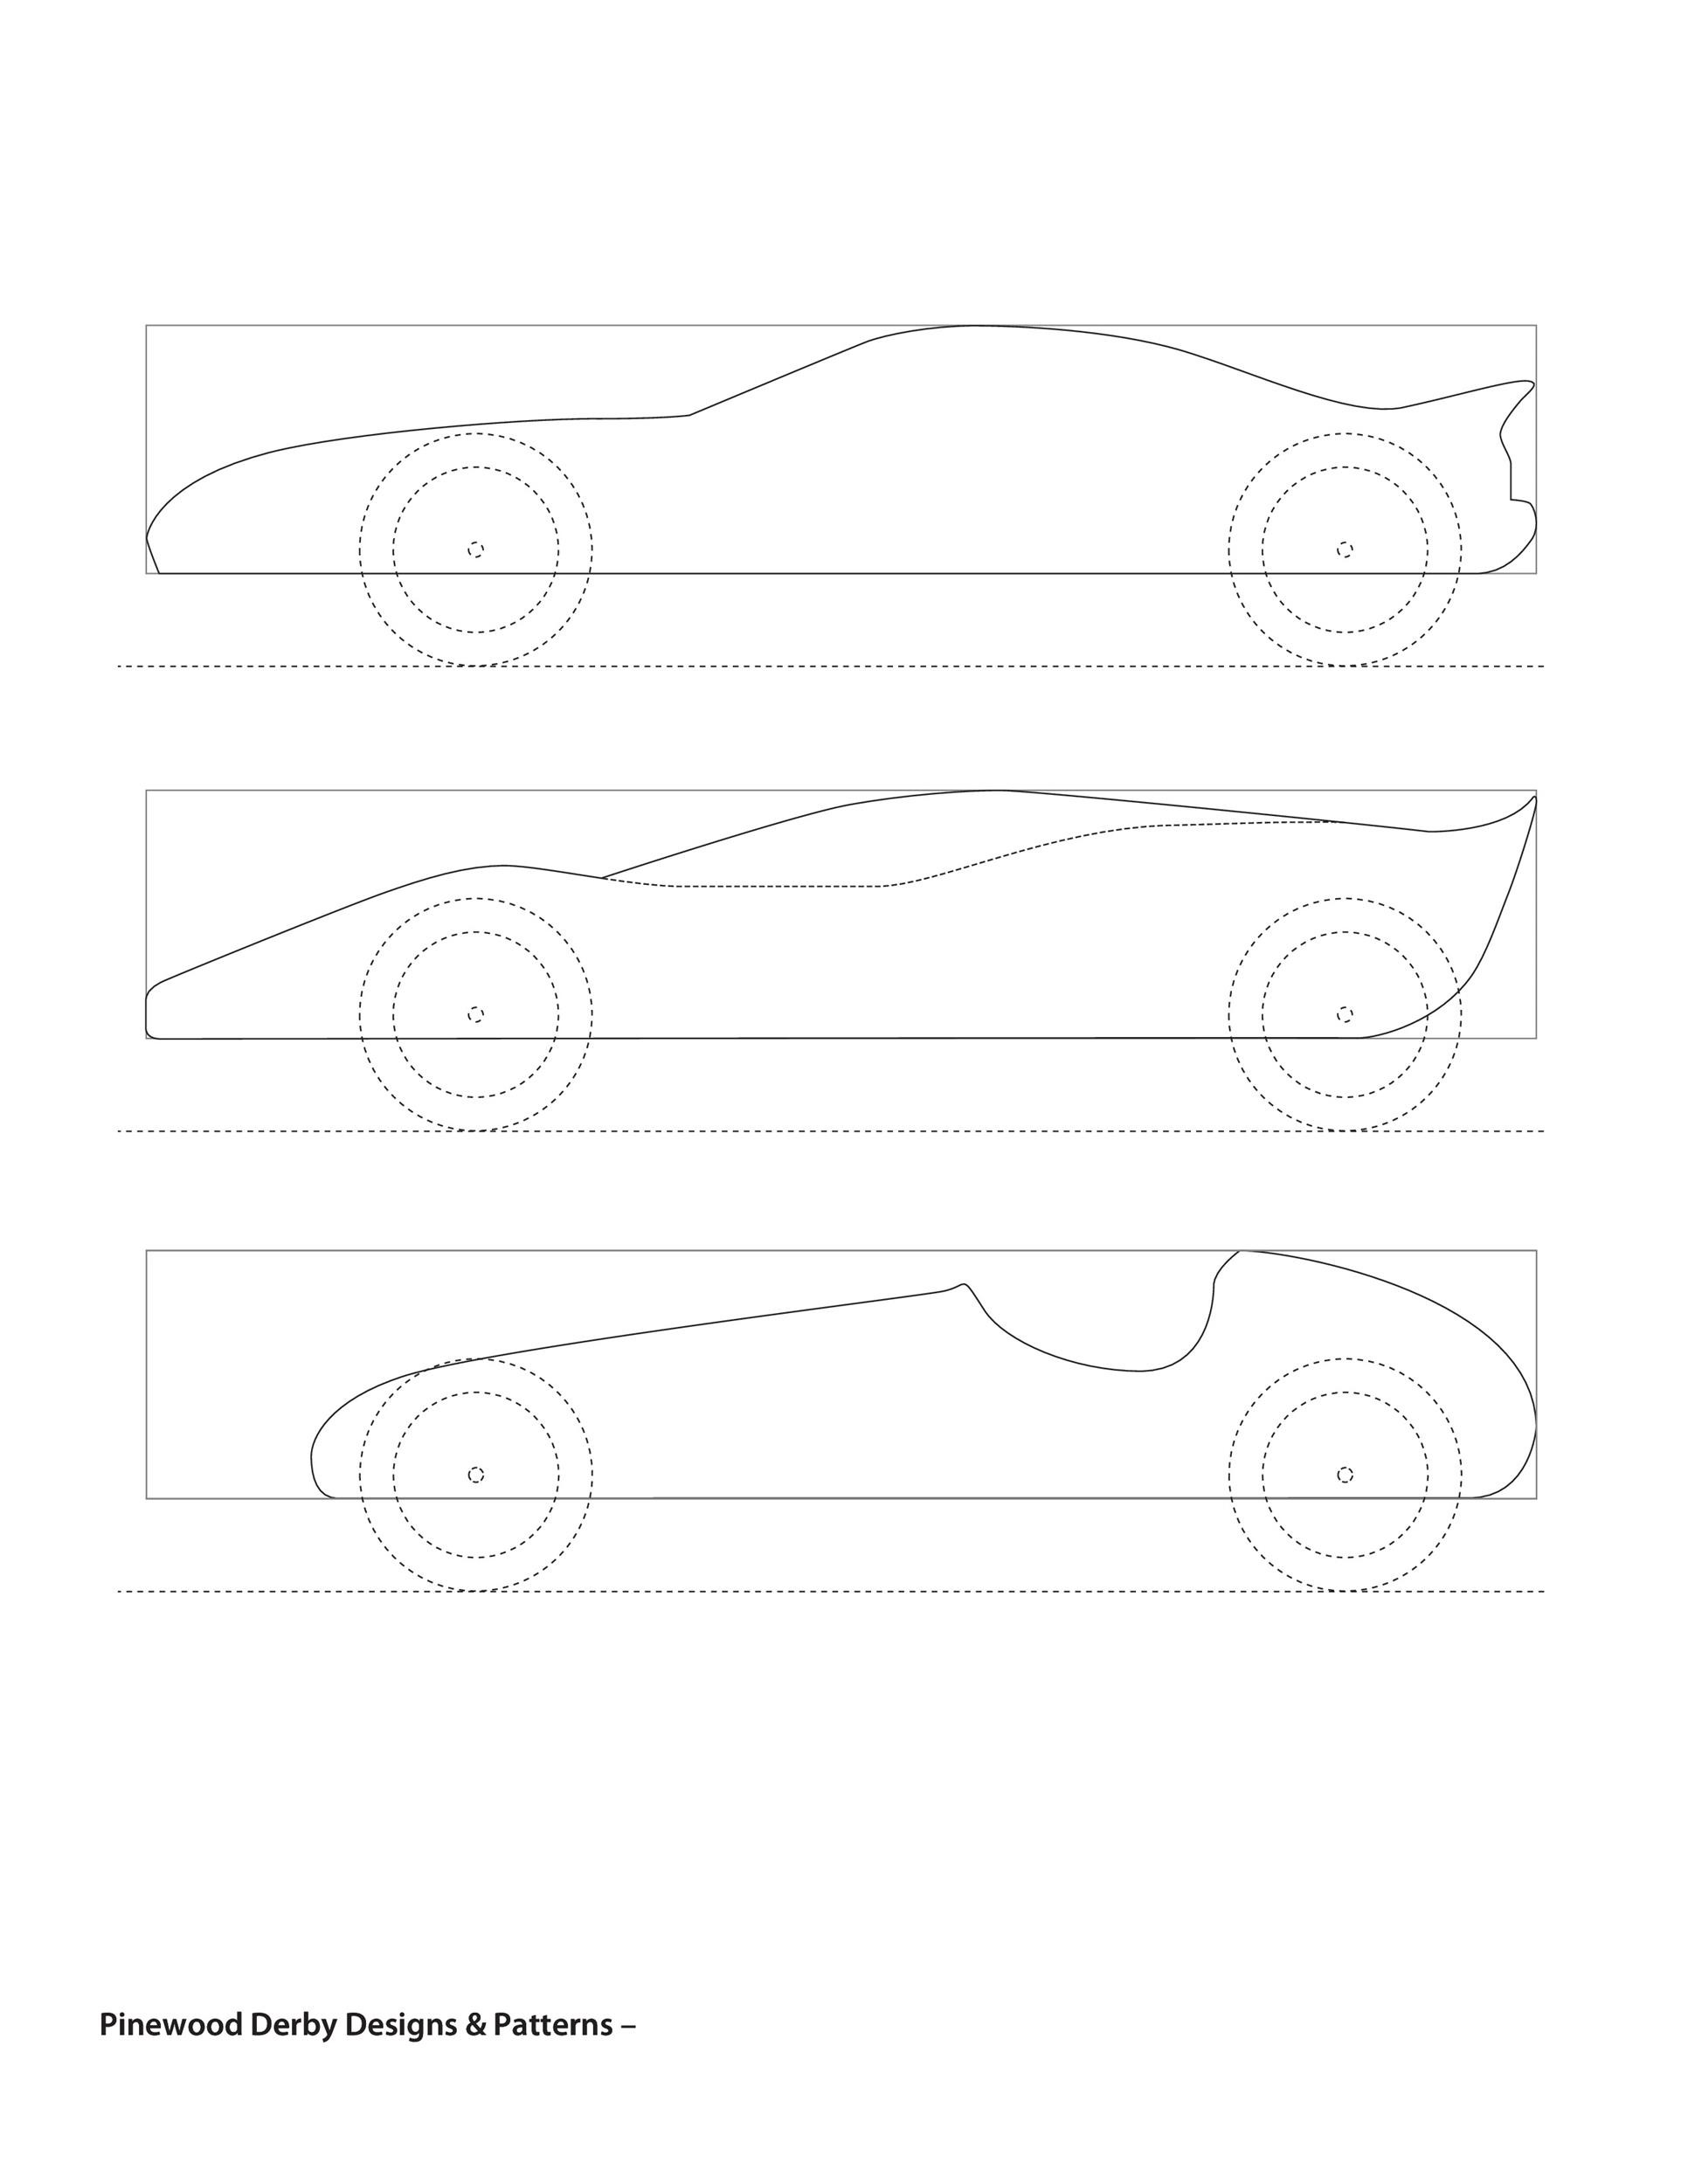 Free pinewood derby templates 11